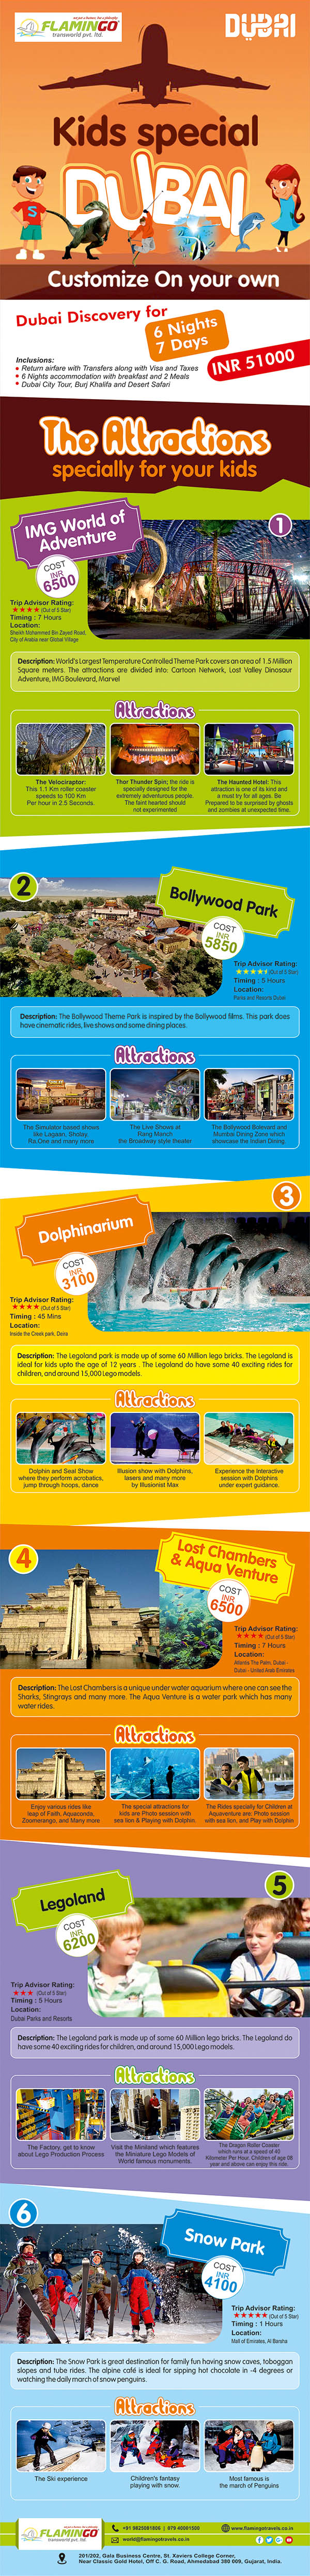 dubai kids special packages